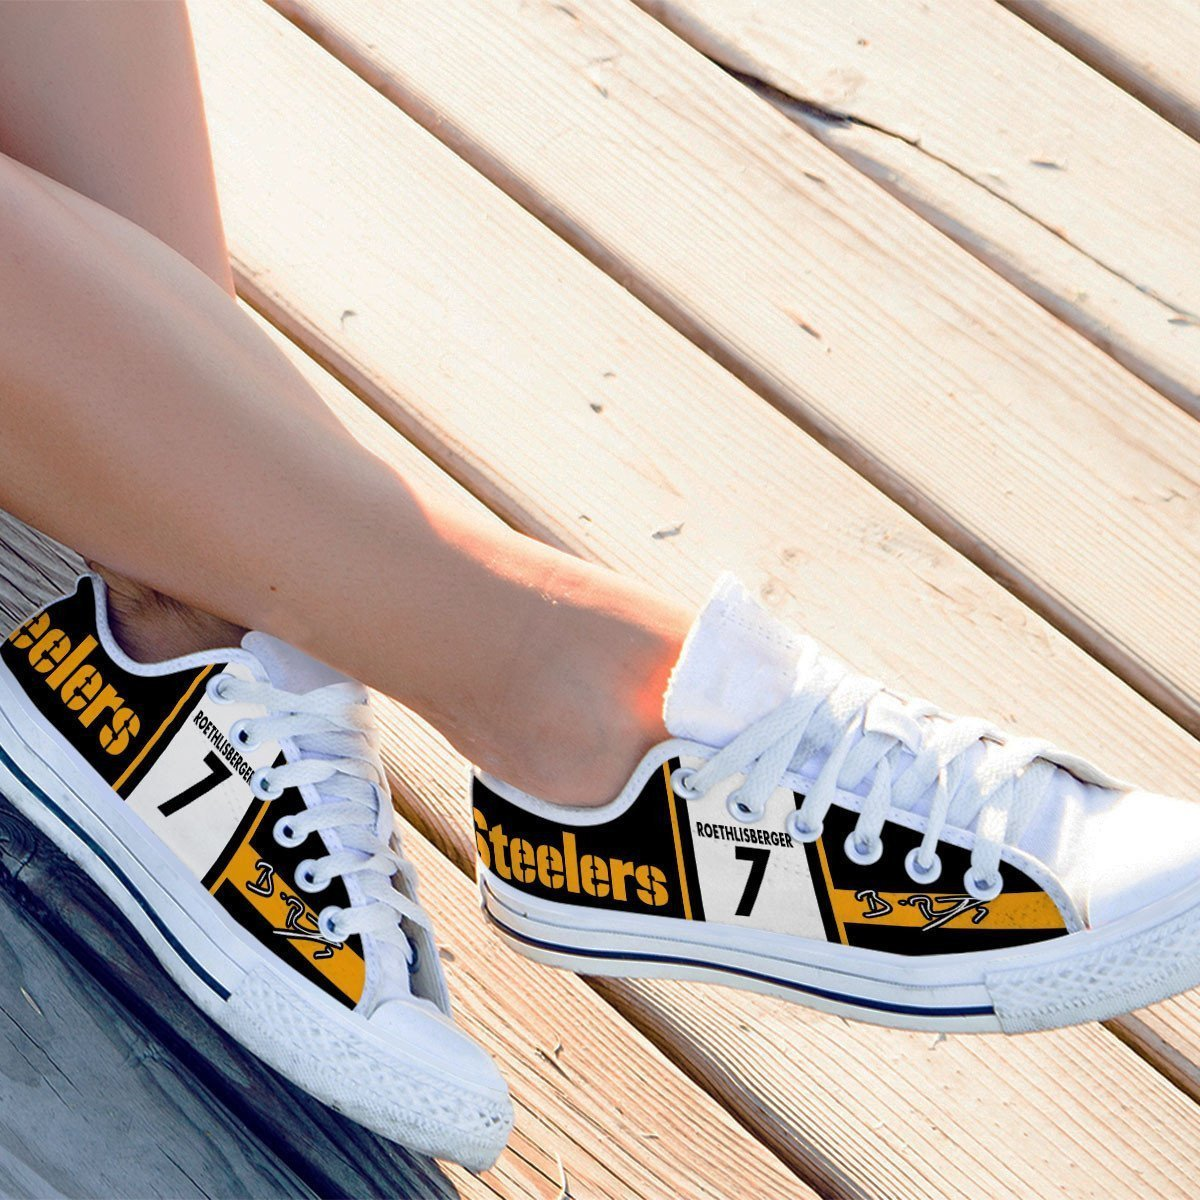 ben roethlisberger ladies low cut sneakers